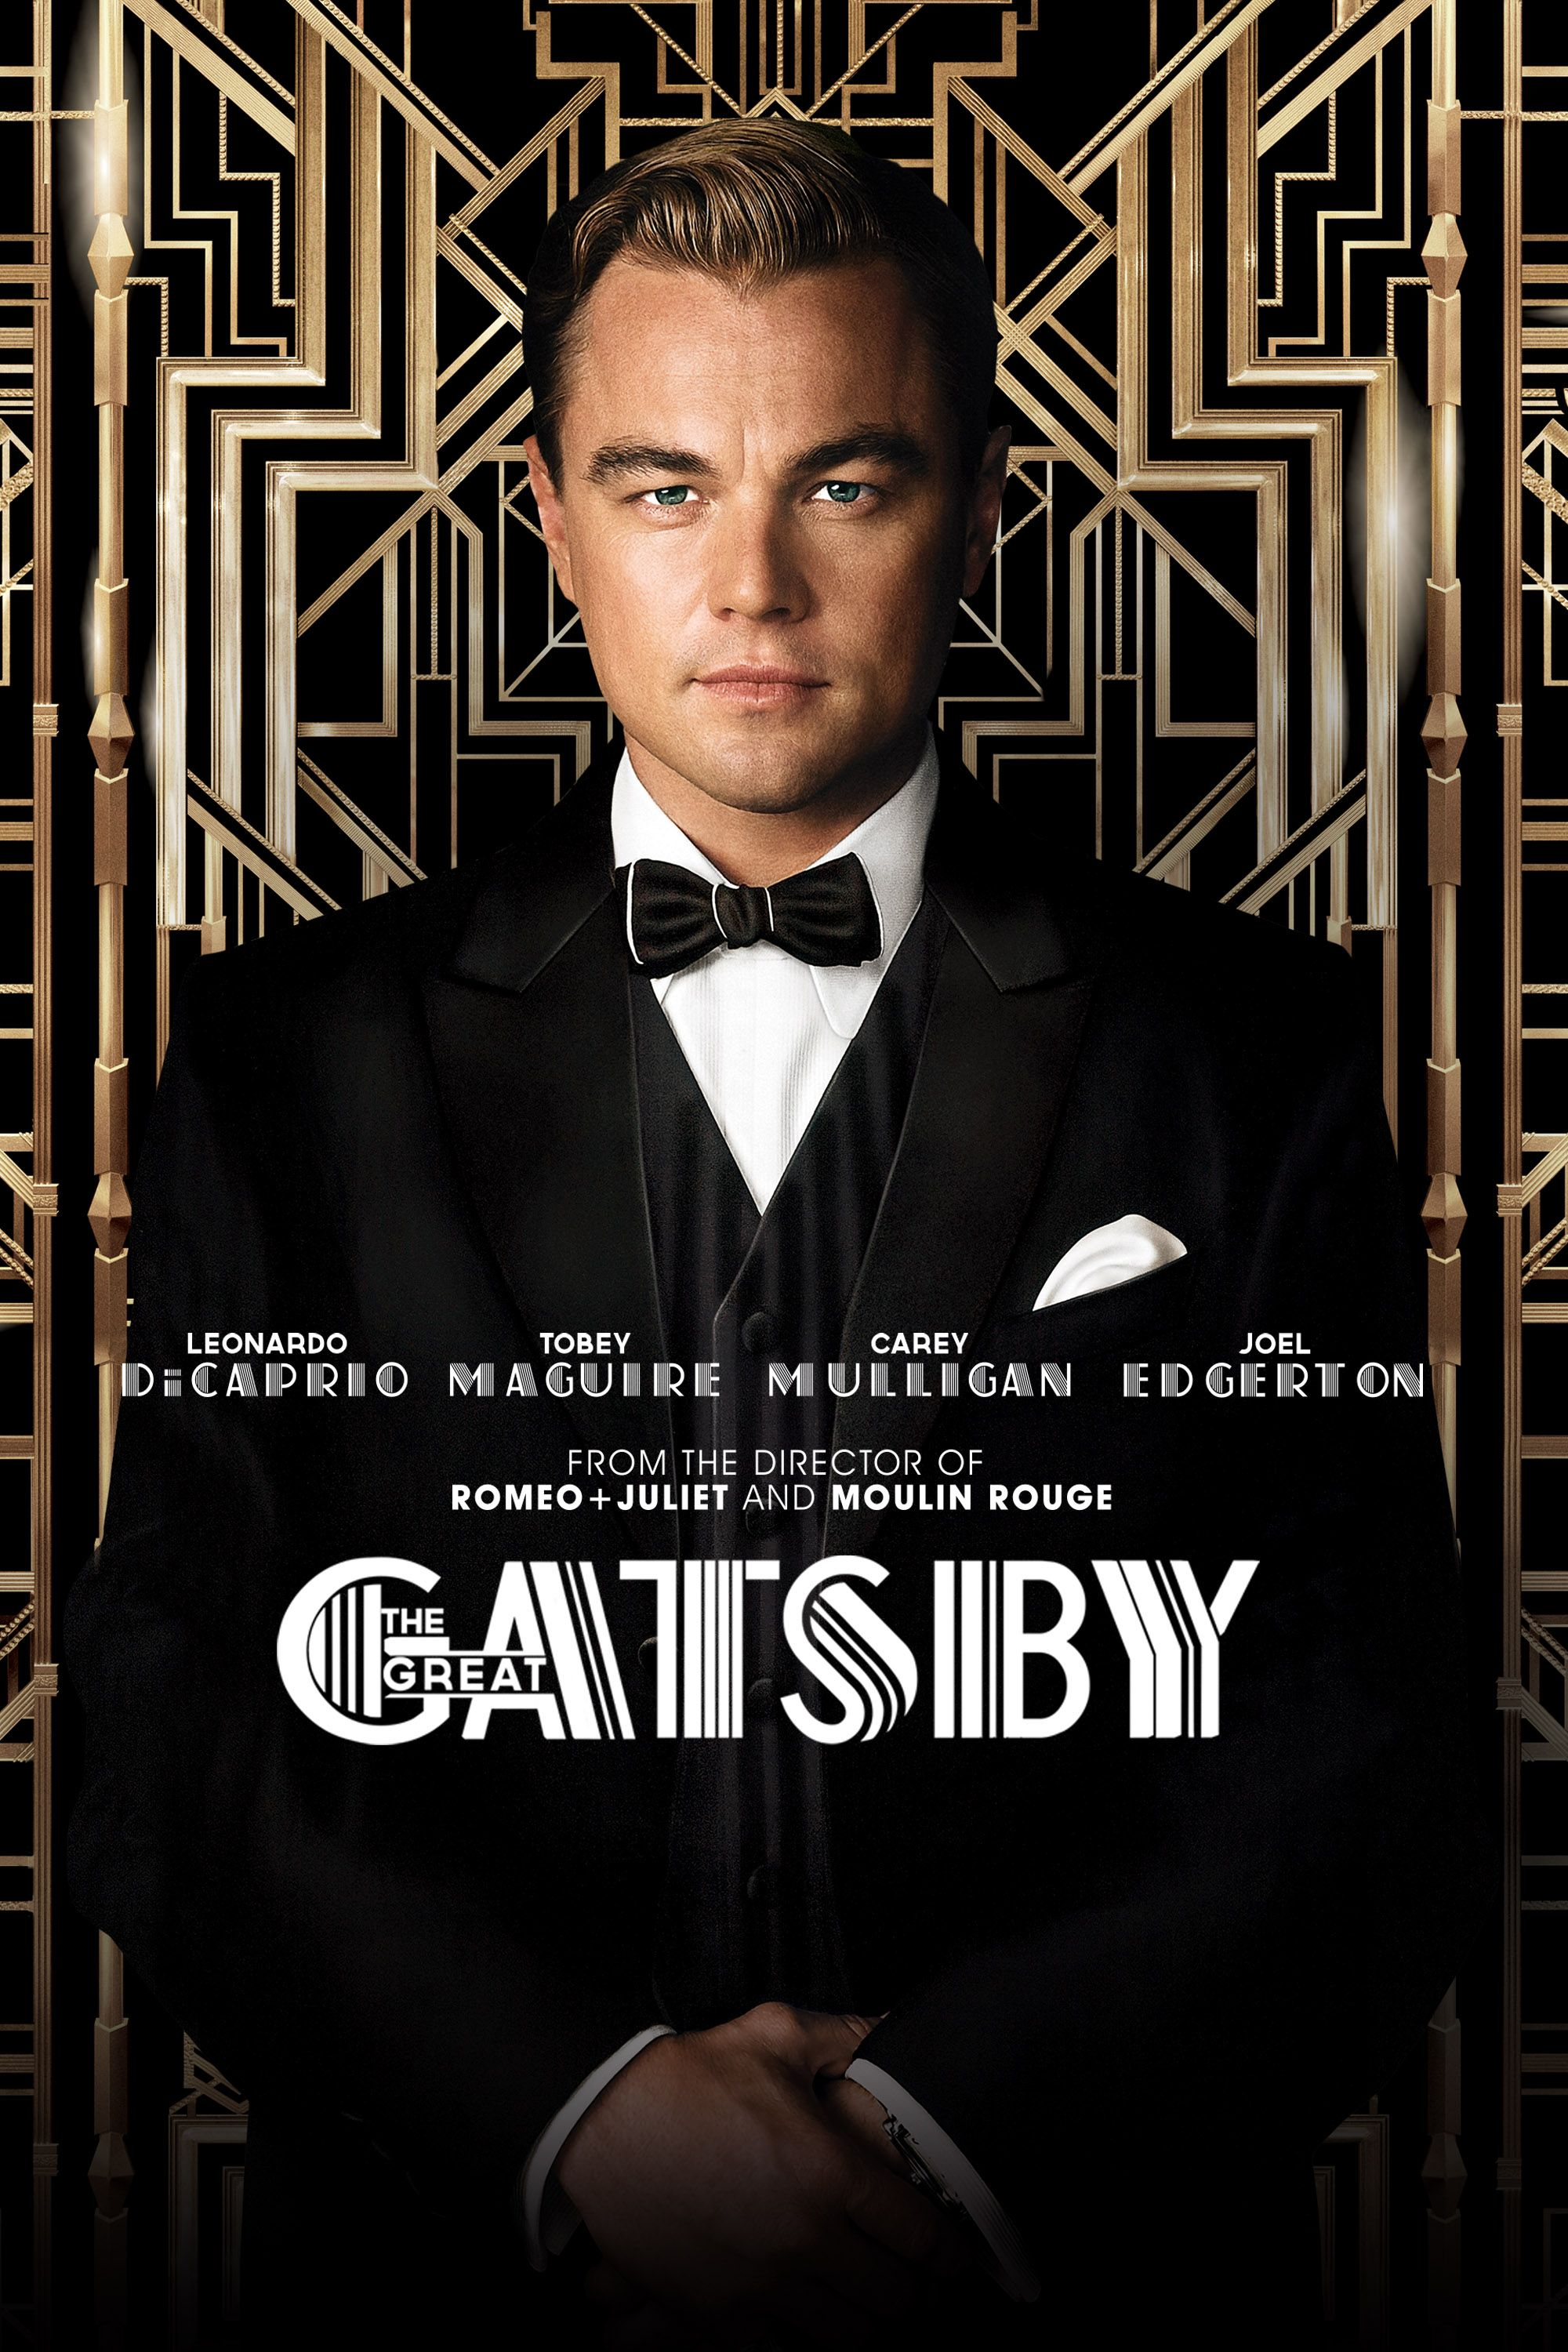 The Great Gatsby Full Movie Movies Anywhere